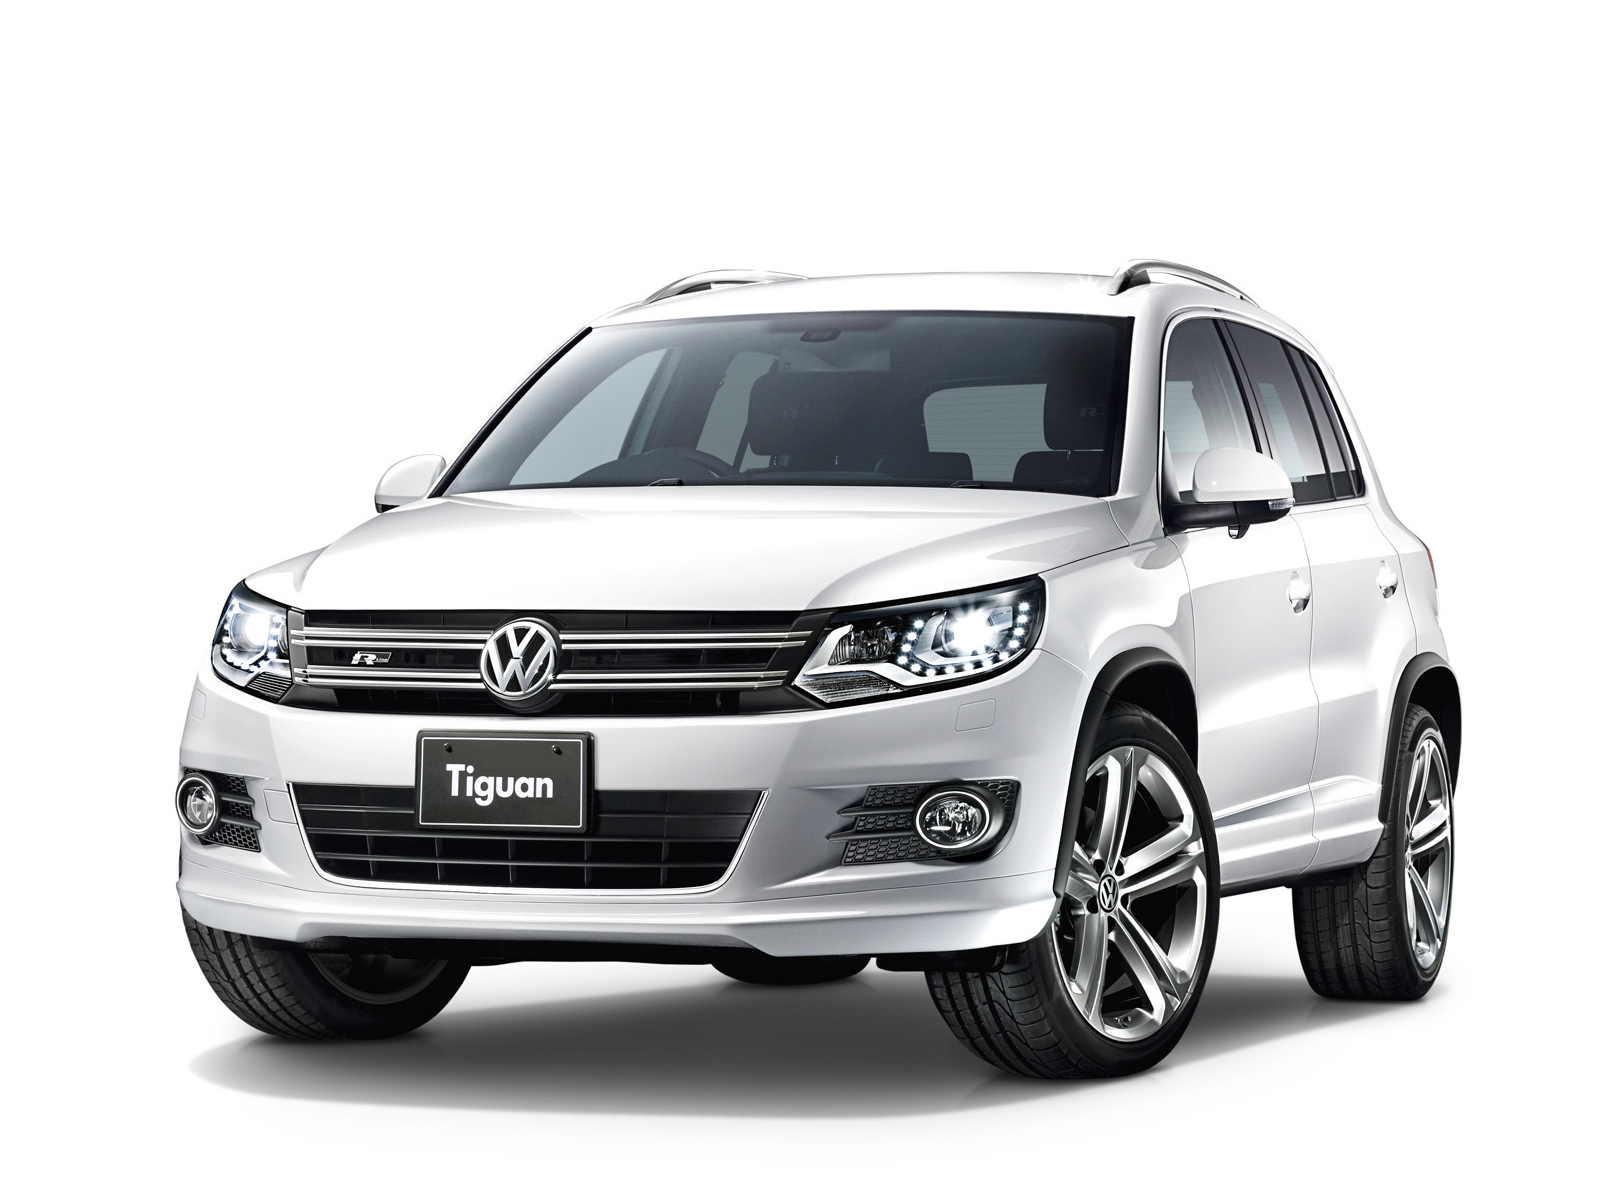 2019 volkswagen tiguan r line car photos catalog 2018. Black Bedroom Furniture Sets. Home Design Ideas